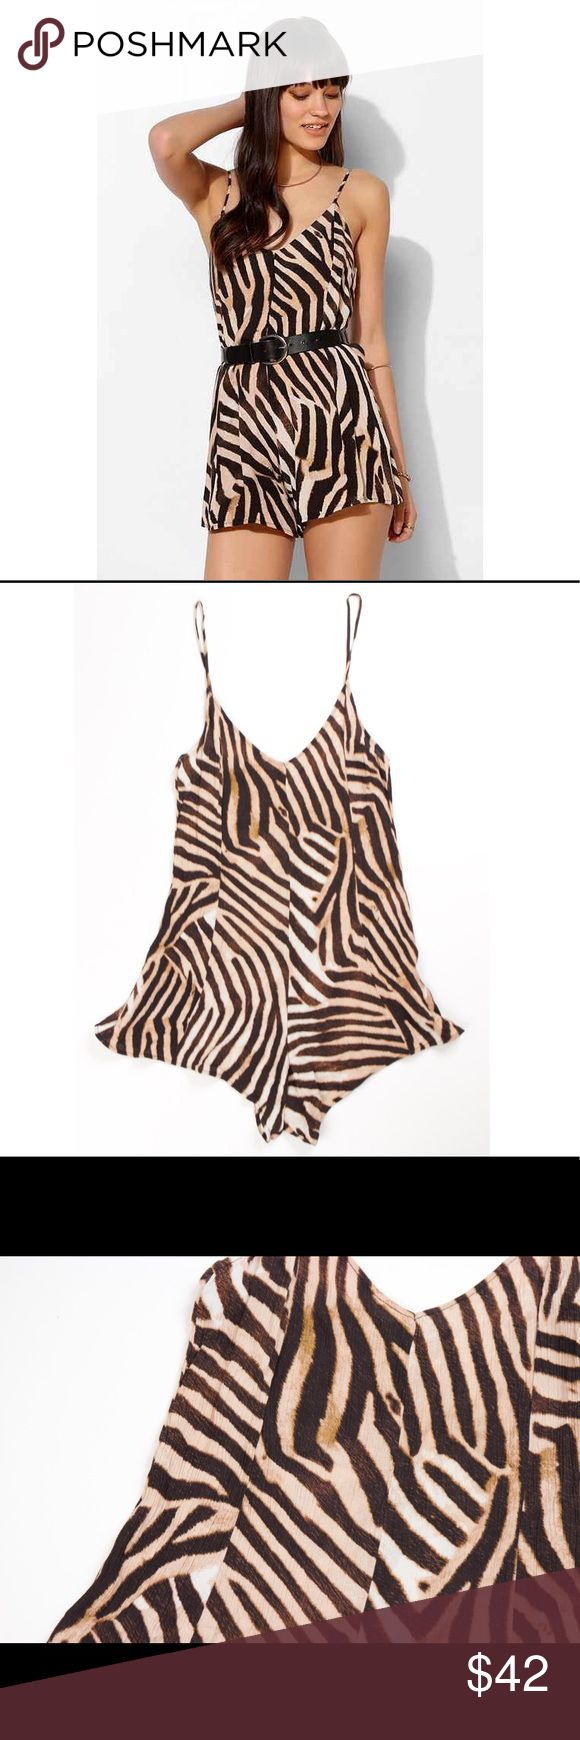 "Somedays Lovin fight animal print brown romper Somedays Lovin ""Fight Animal"" print romper. Adjustable straps. Zips up the back. 100% viscose. Size xs. *Belt not included  Bust-30 Waist-30 Hips-34 Rise-12 Inseam-4 Length-28 Somedays Lovin Pants Jumpsuits & Rompers"